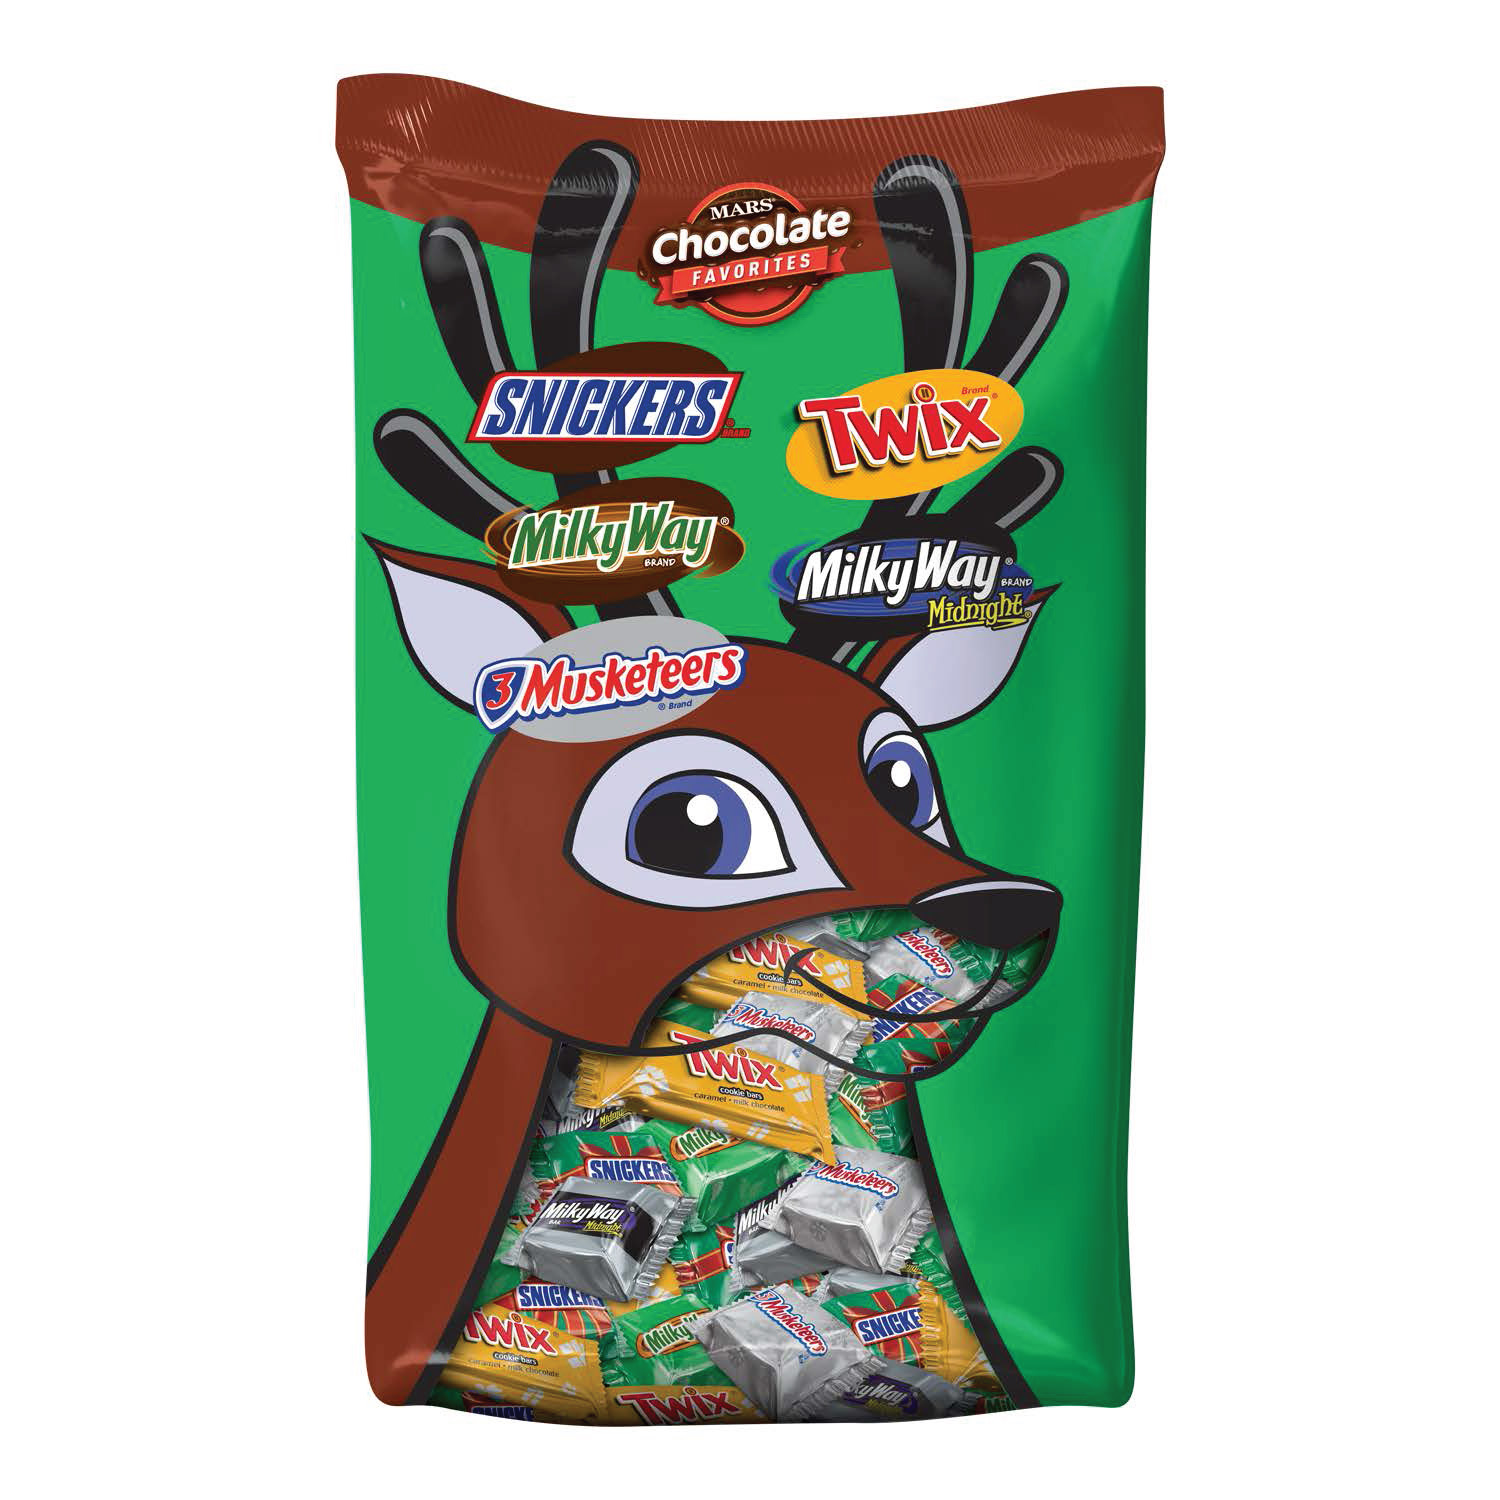 Mars Chocolate, Holiday Minis Size Candy Bars Variety Mix, 37.26 Oz